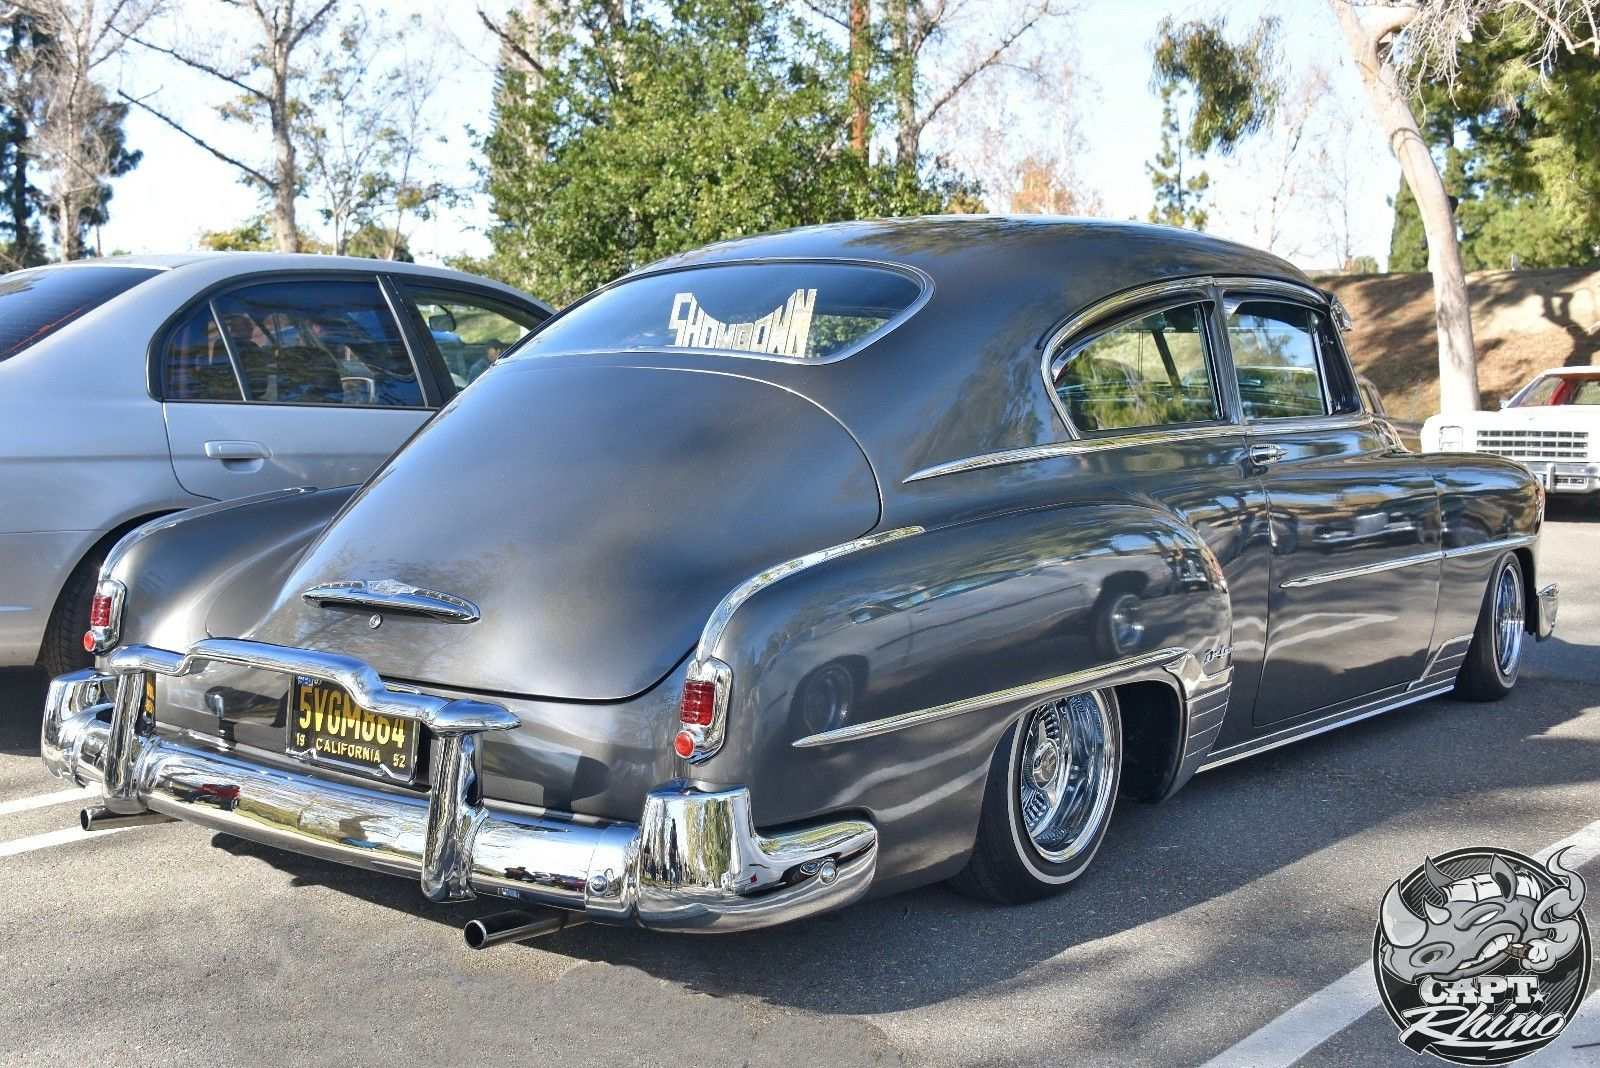 All Chevy chevy classic cars : 52 chevy | cars 1935 to 1957 | Pinterest | Cars